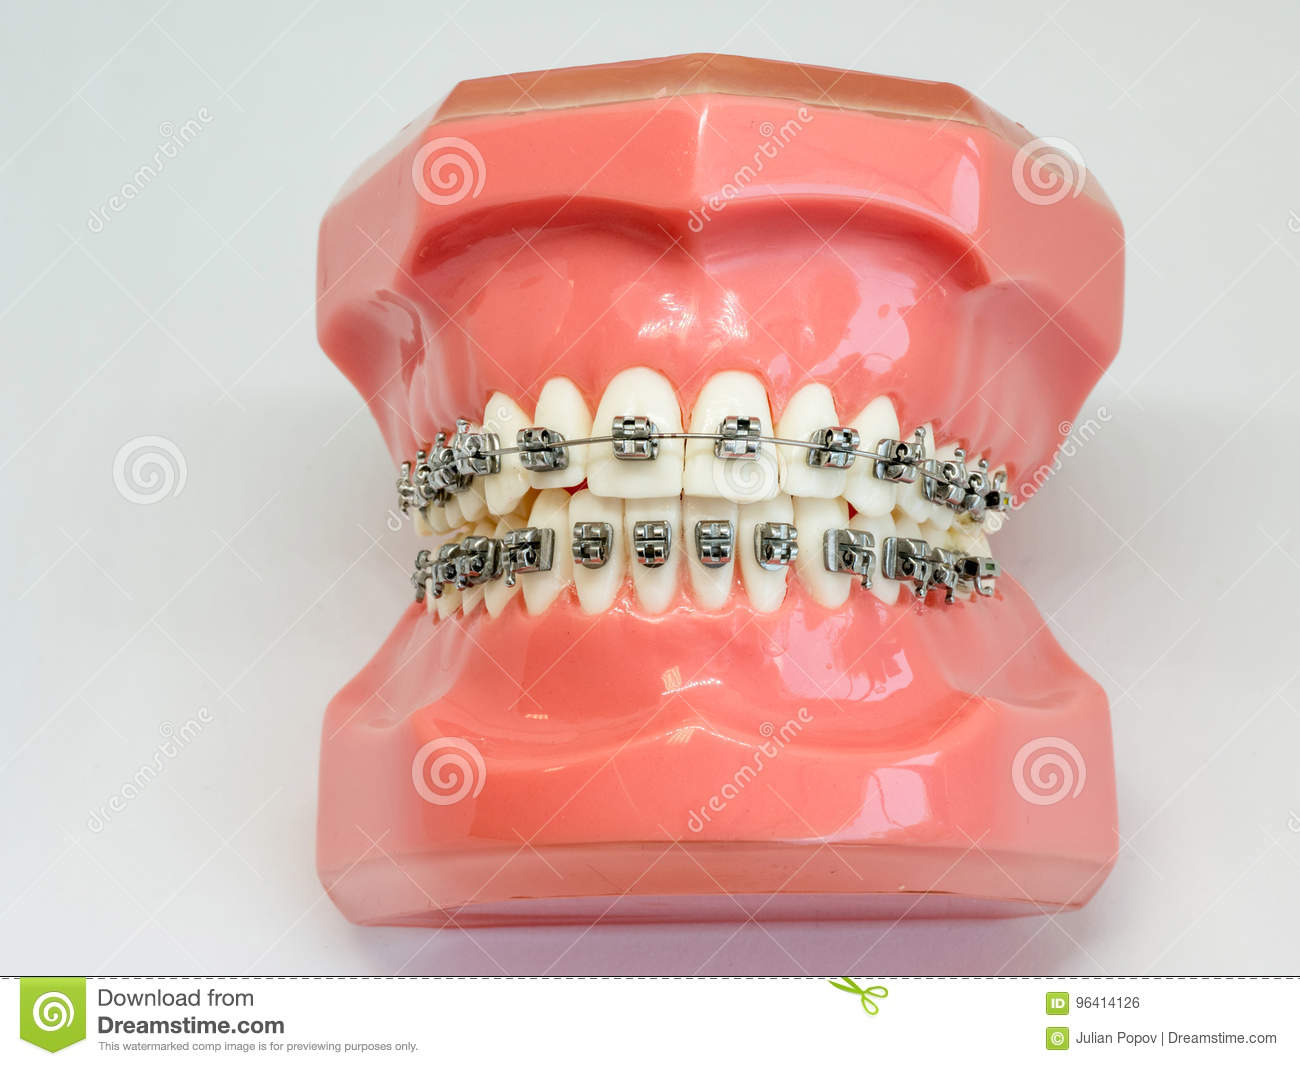 Artificial model of human jaw with wire colorful braces attached